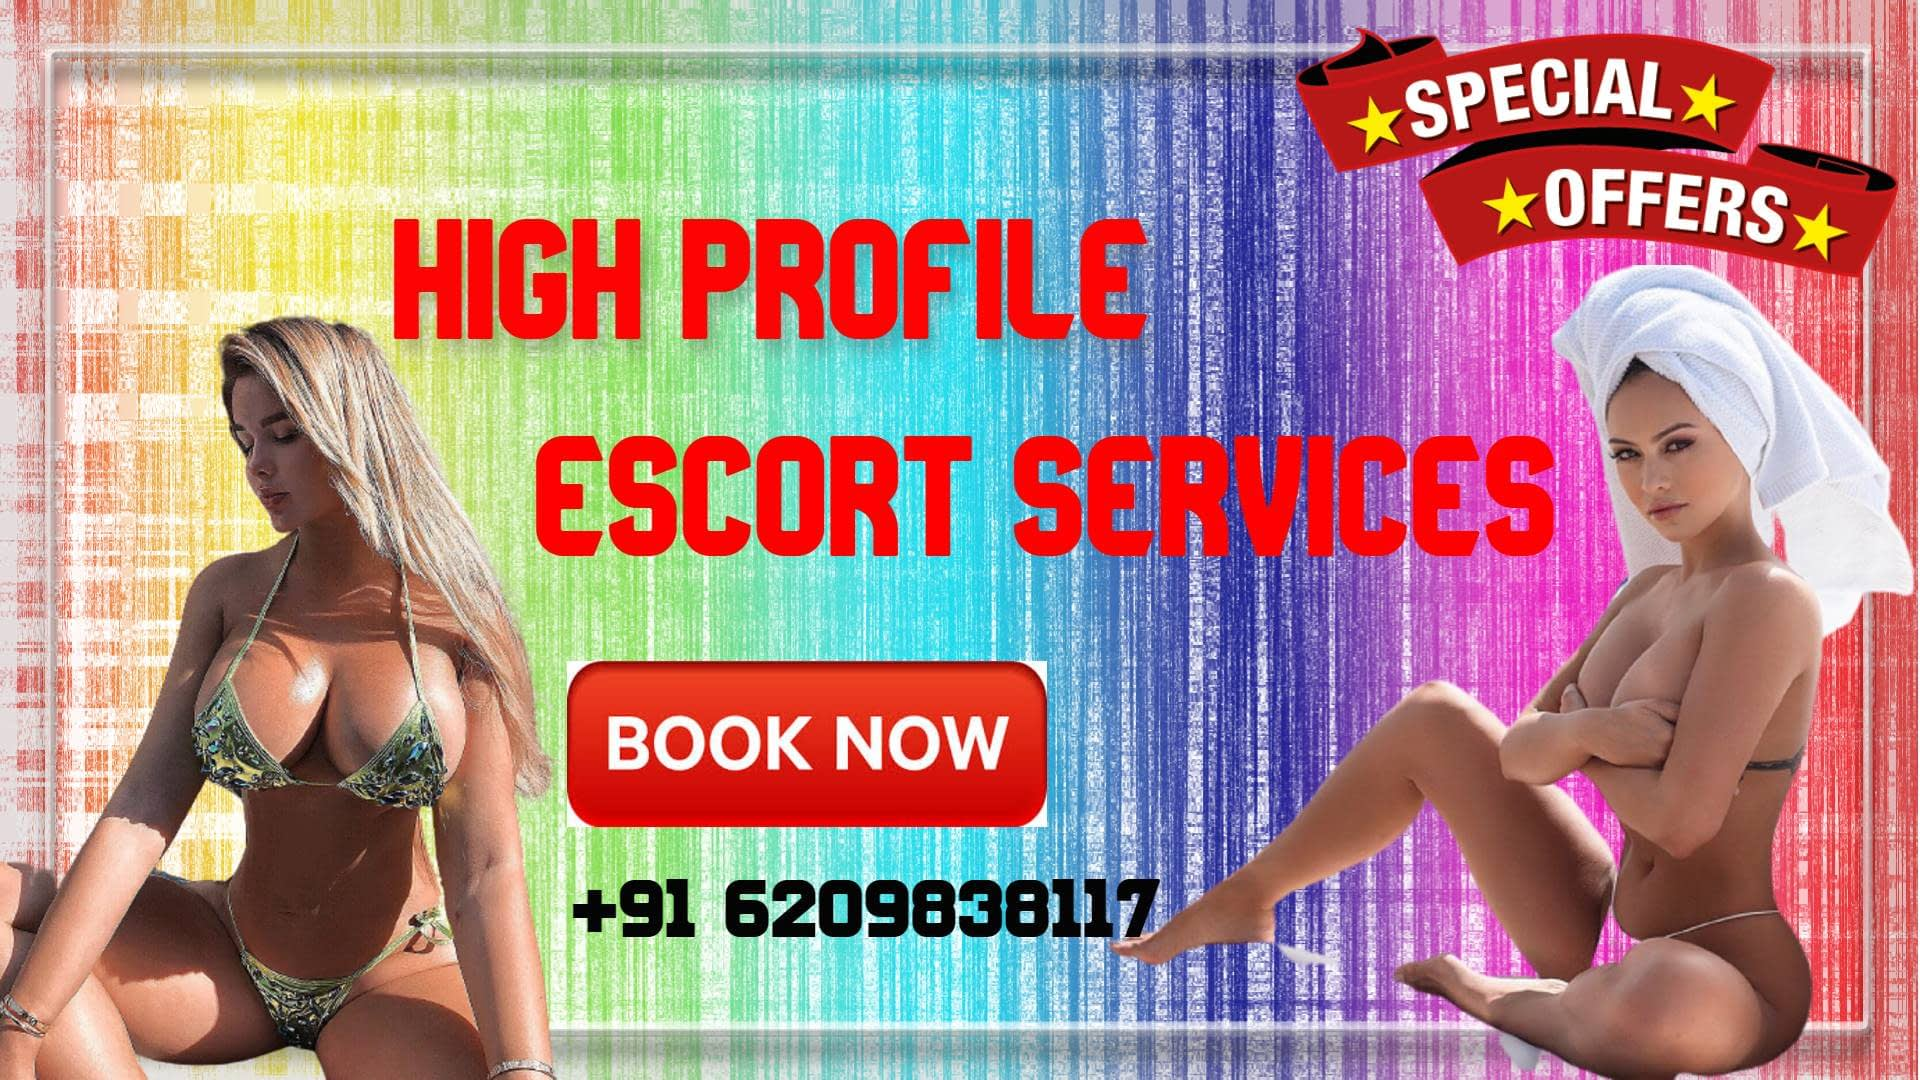 High-Profile escort